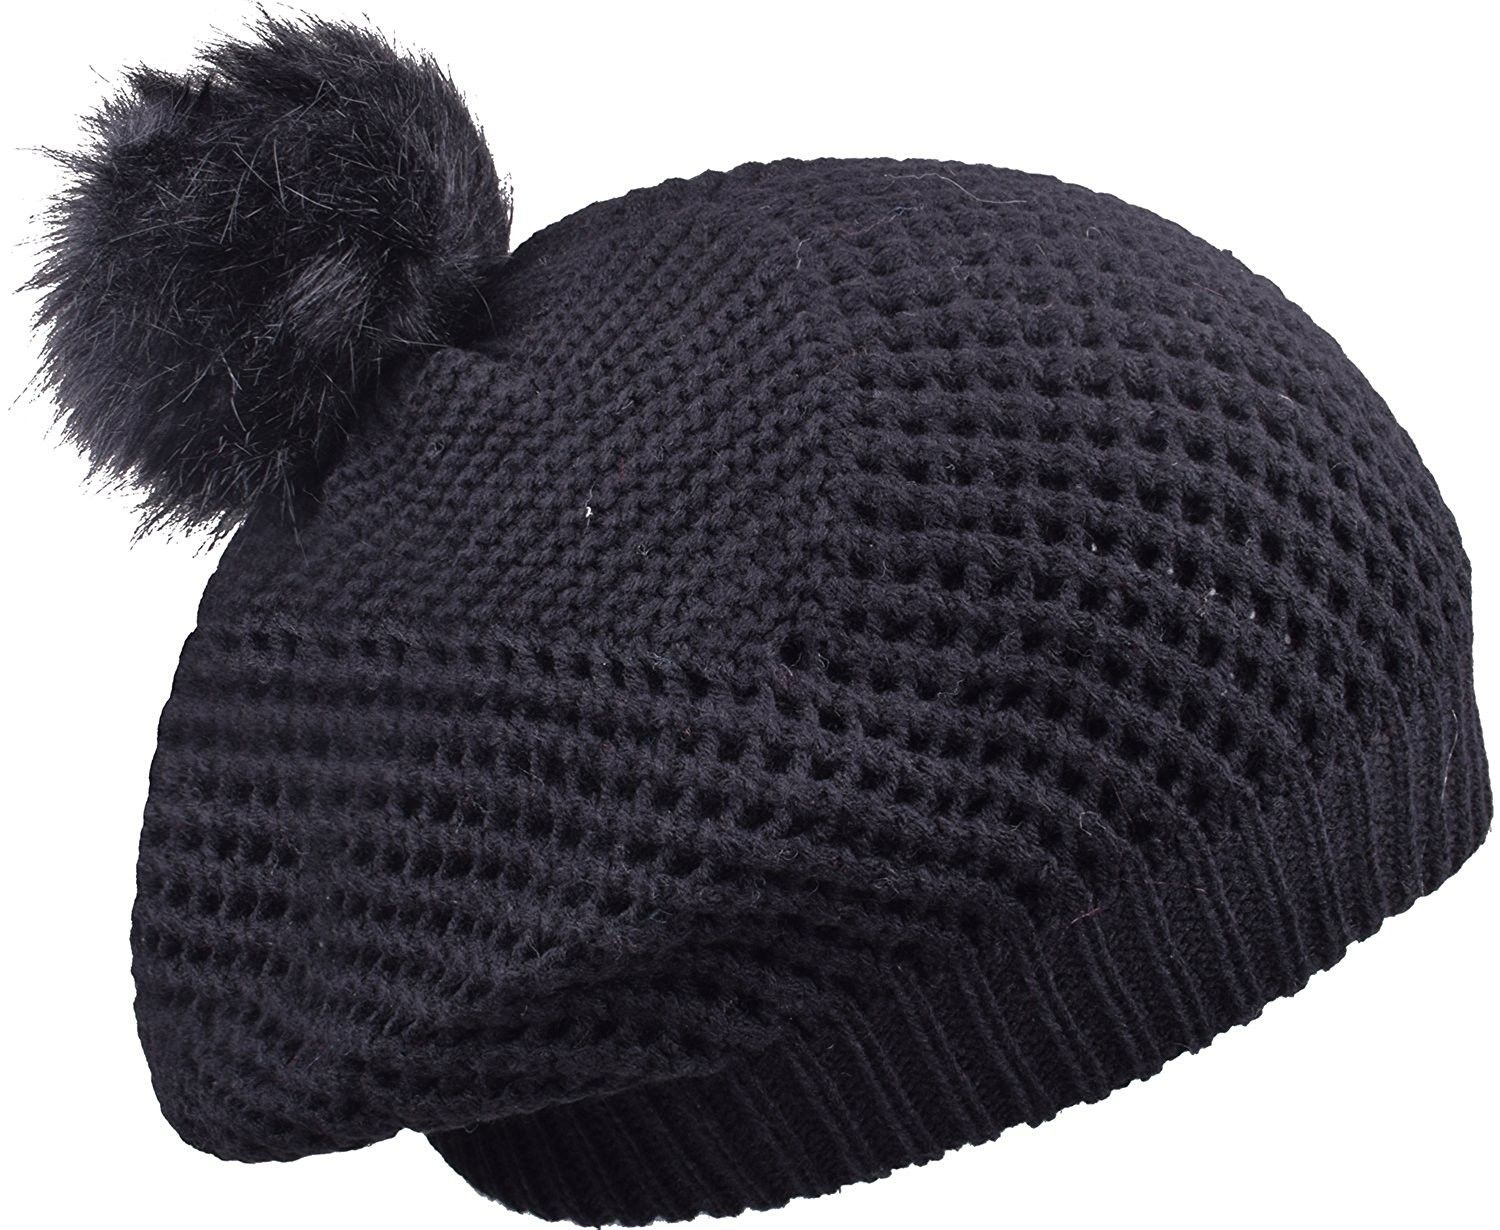 cbb75df1d7f Warm Cable Knit Beanie Hat With Pom Pom Stylish Winter Hats For Women Skull  Cap - Black - CK1884LEWOZ - Hats   Caps